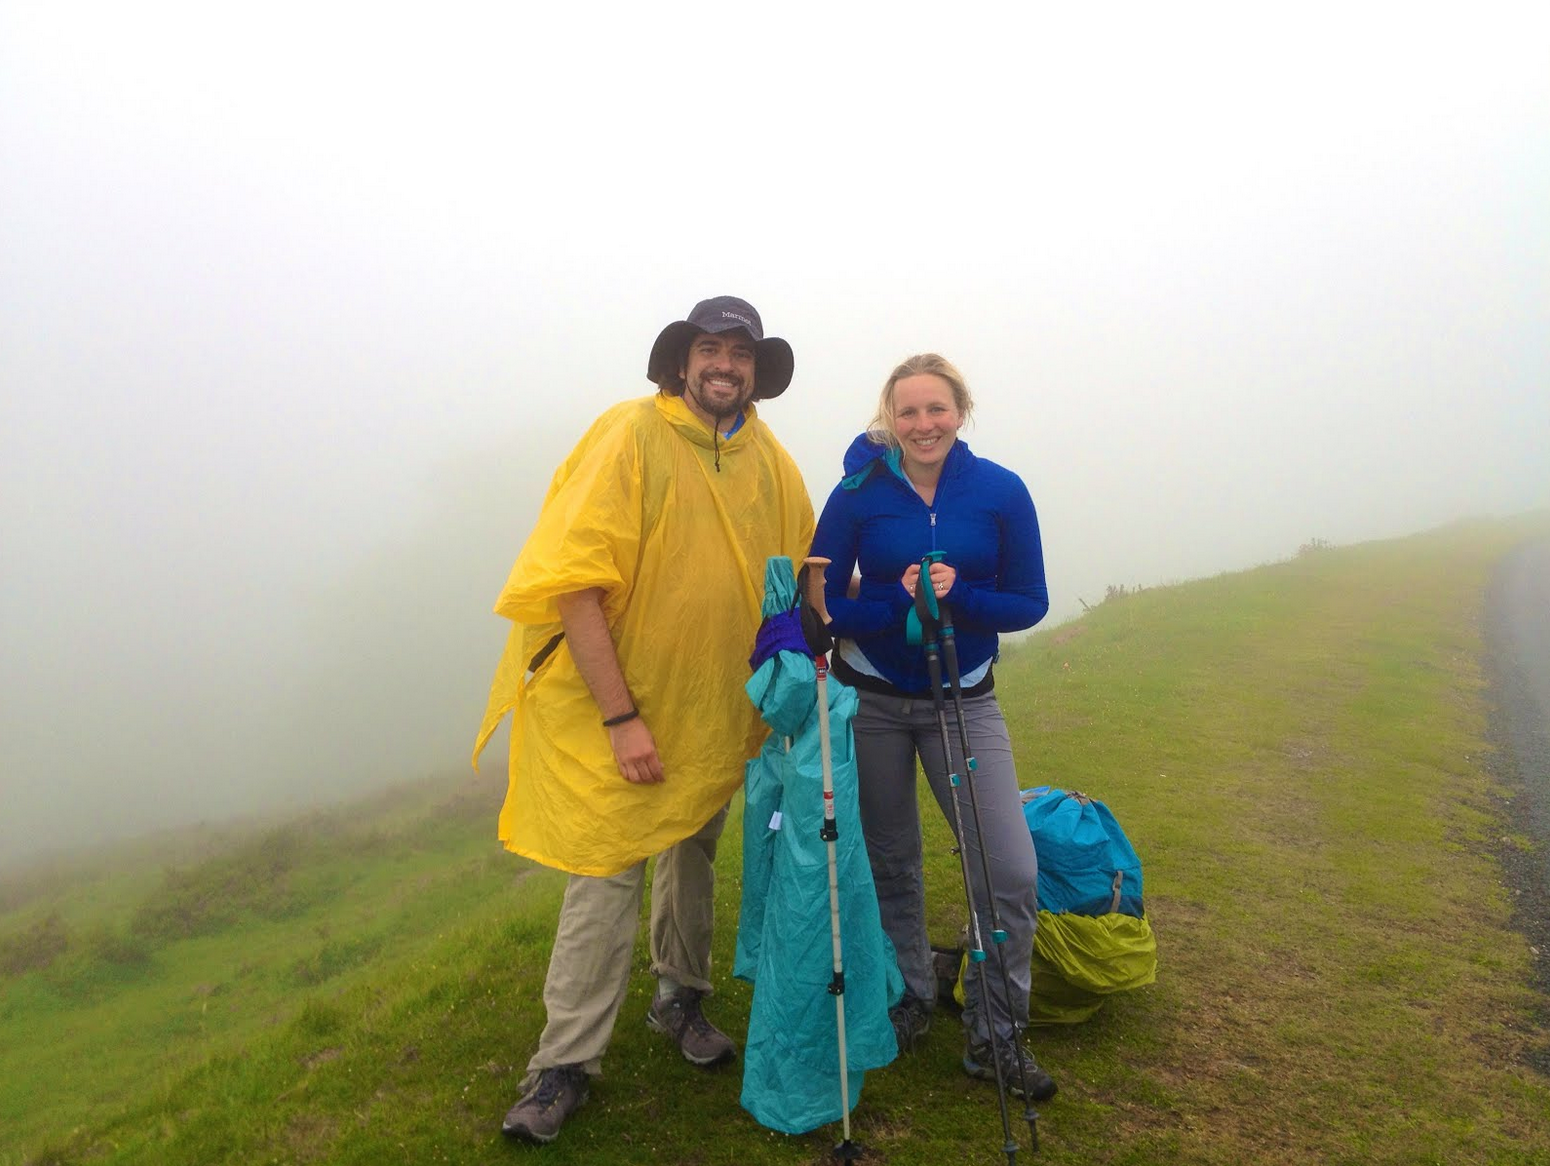 There was grumbling in the clouds and from Shannon. But it was thrilling as well. We were pushing forward slowly on a mountain with very little visibility.